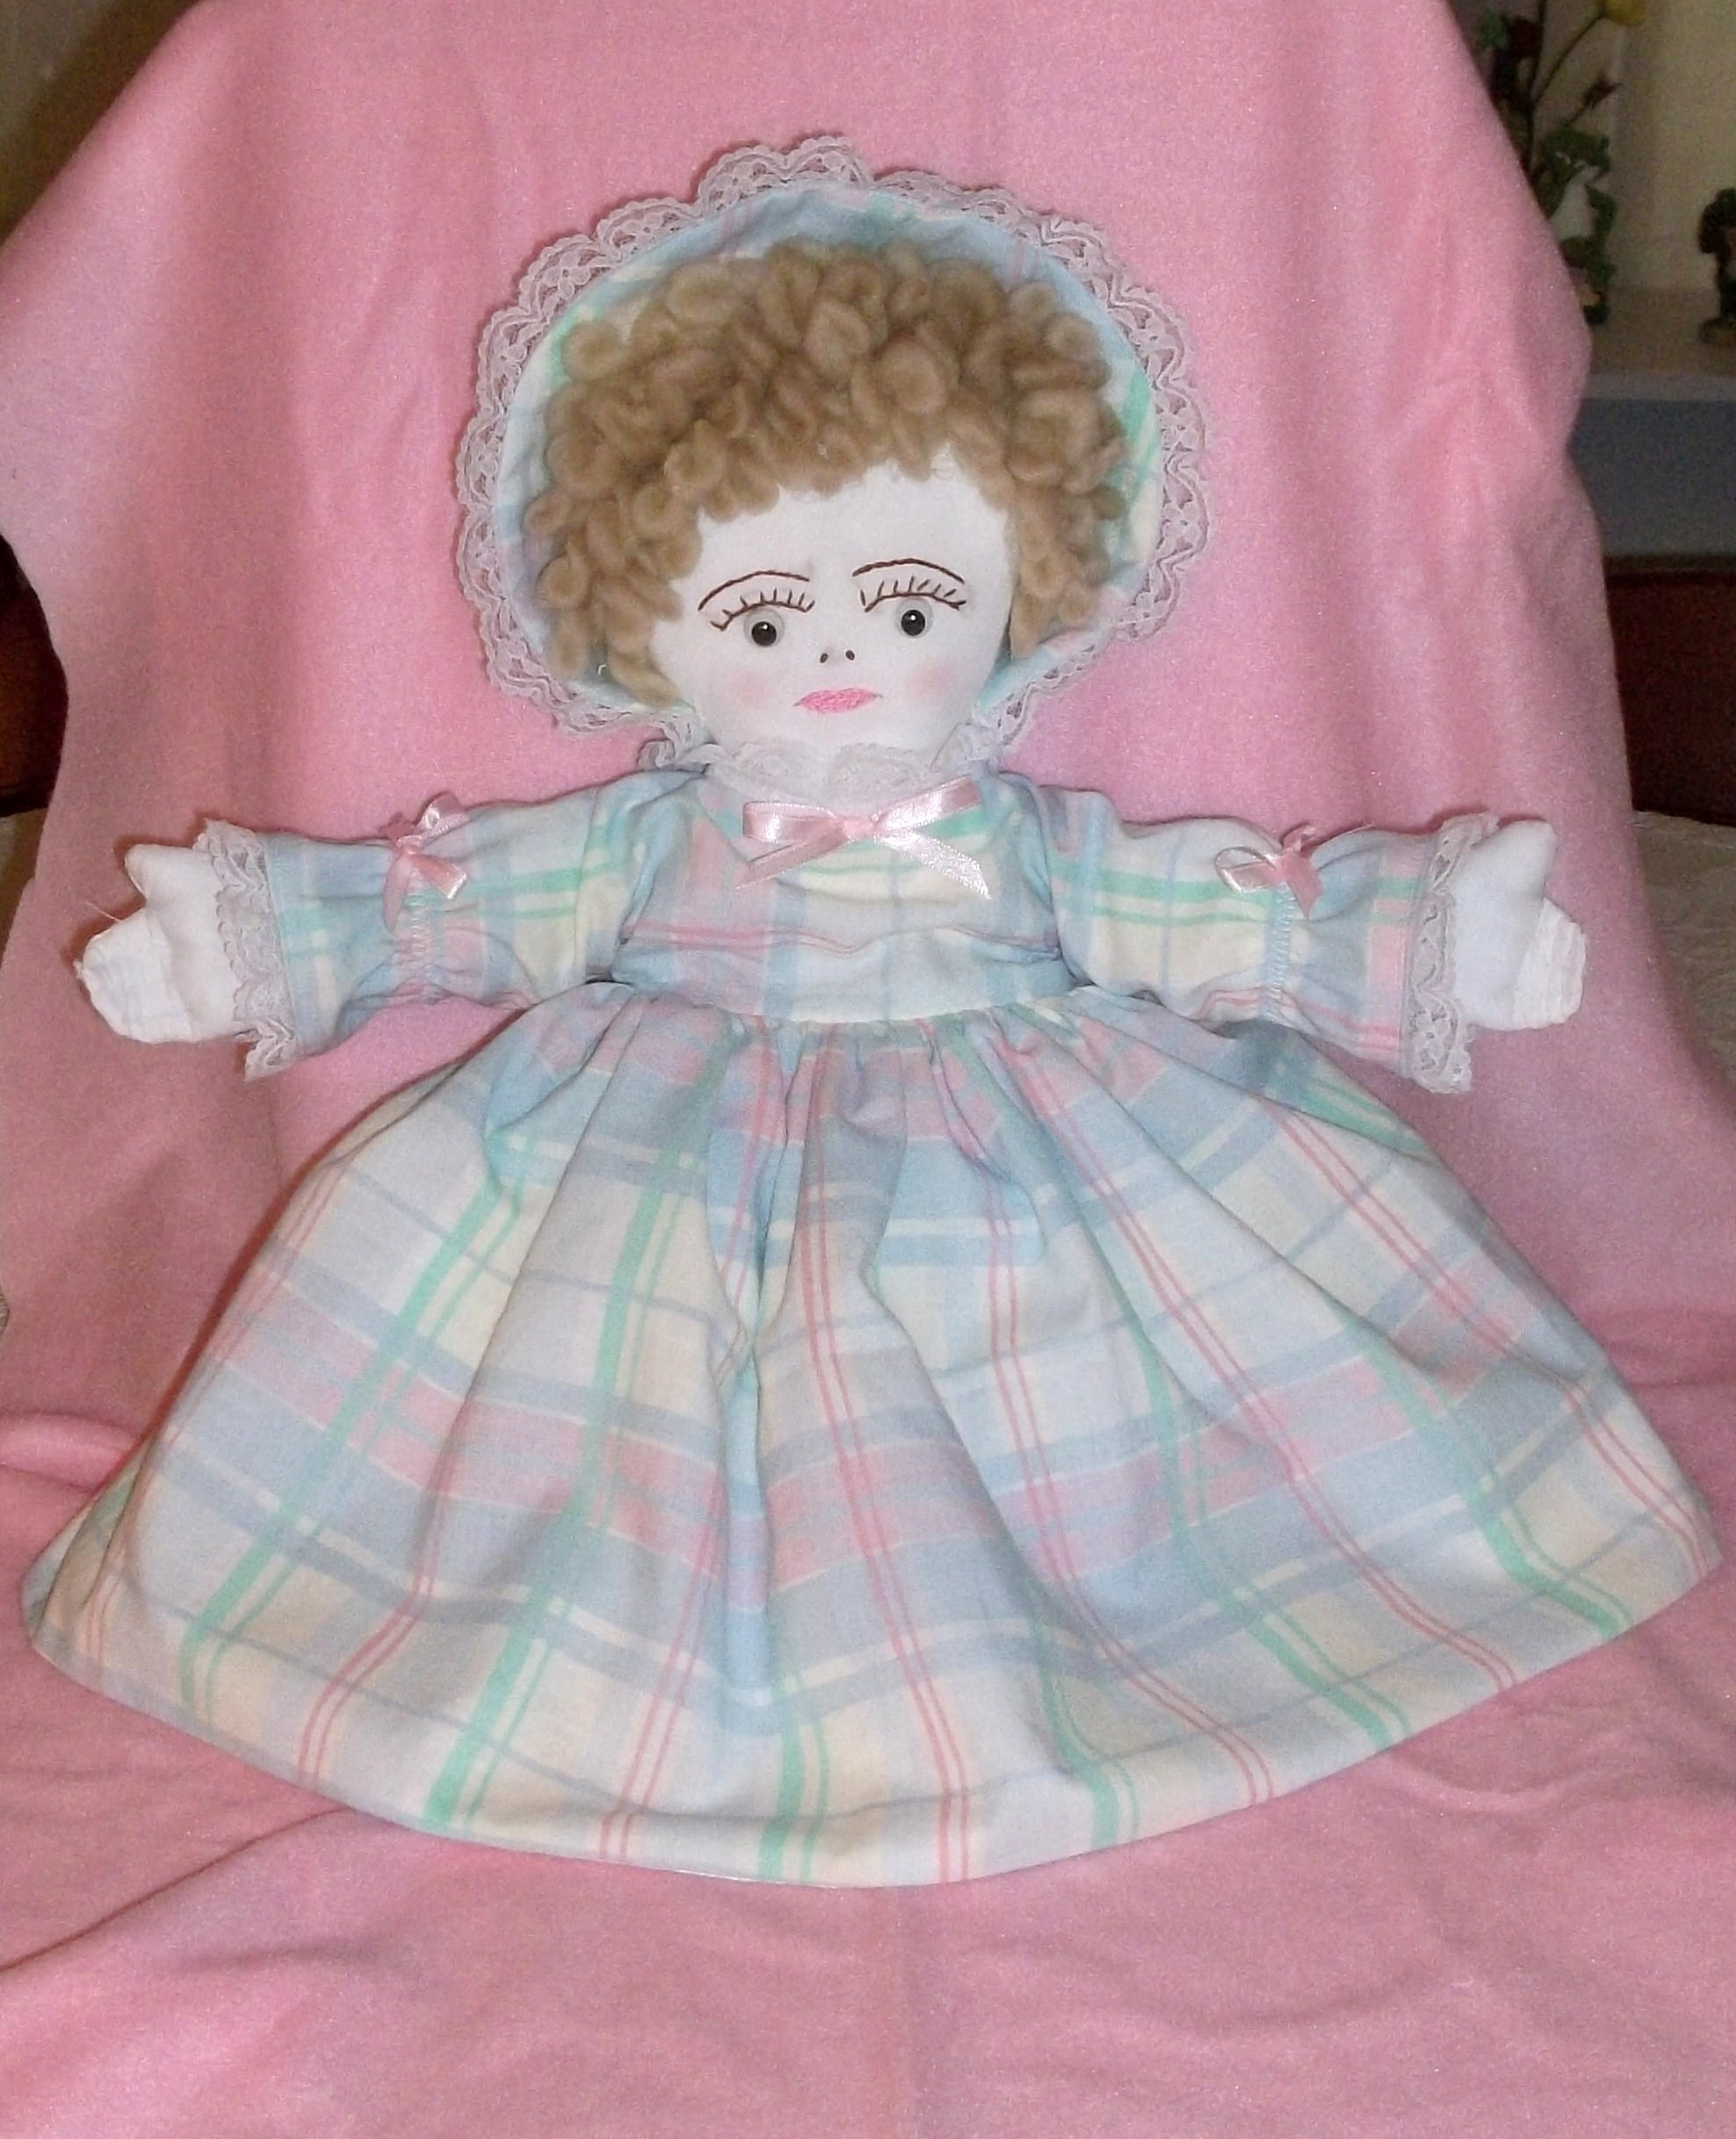 Topsy Turvy Doll Pattern Awesome Free Pattern Keepsake Crafts Of Marvelous 49 Pics topsy Turvy Doll Pattern